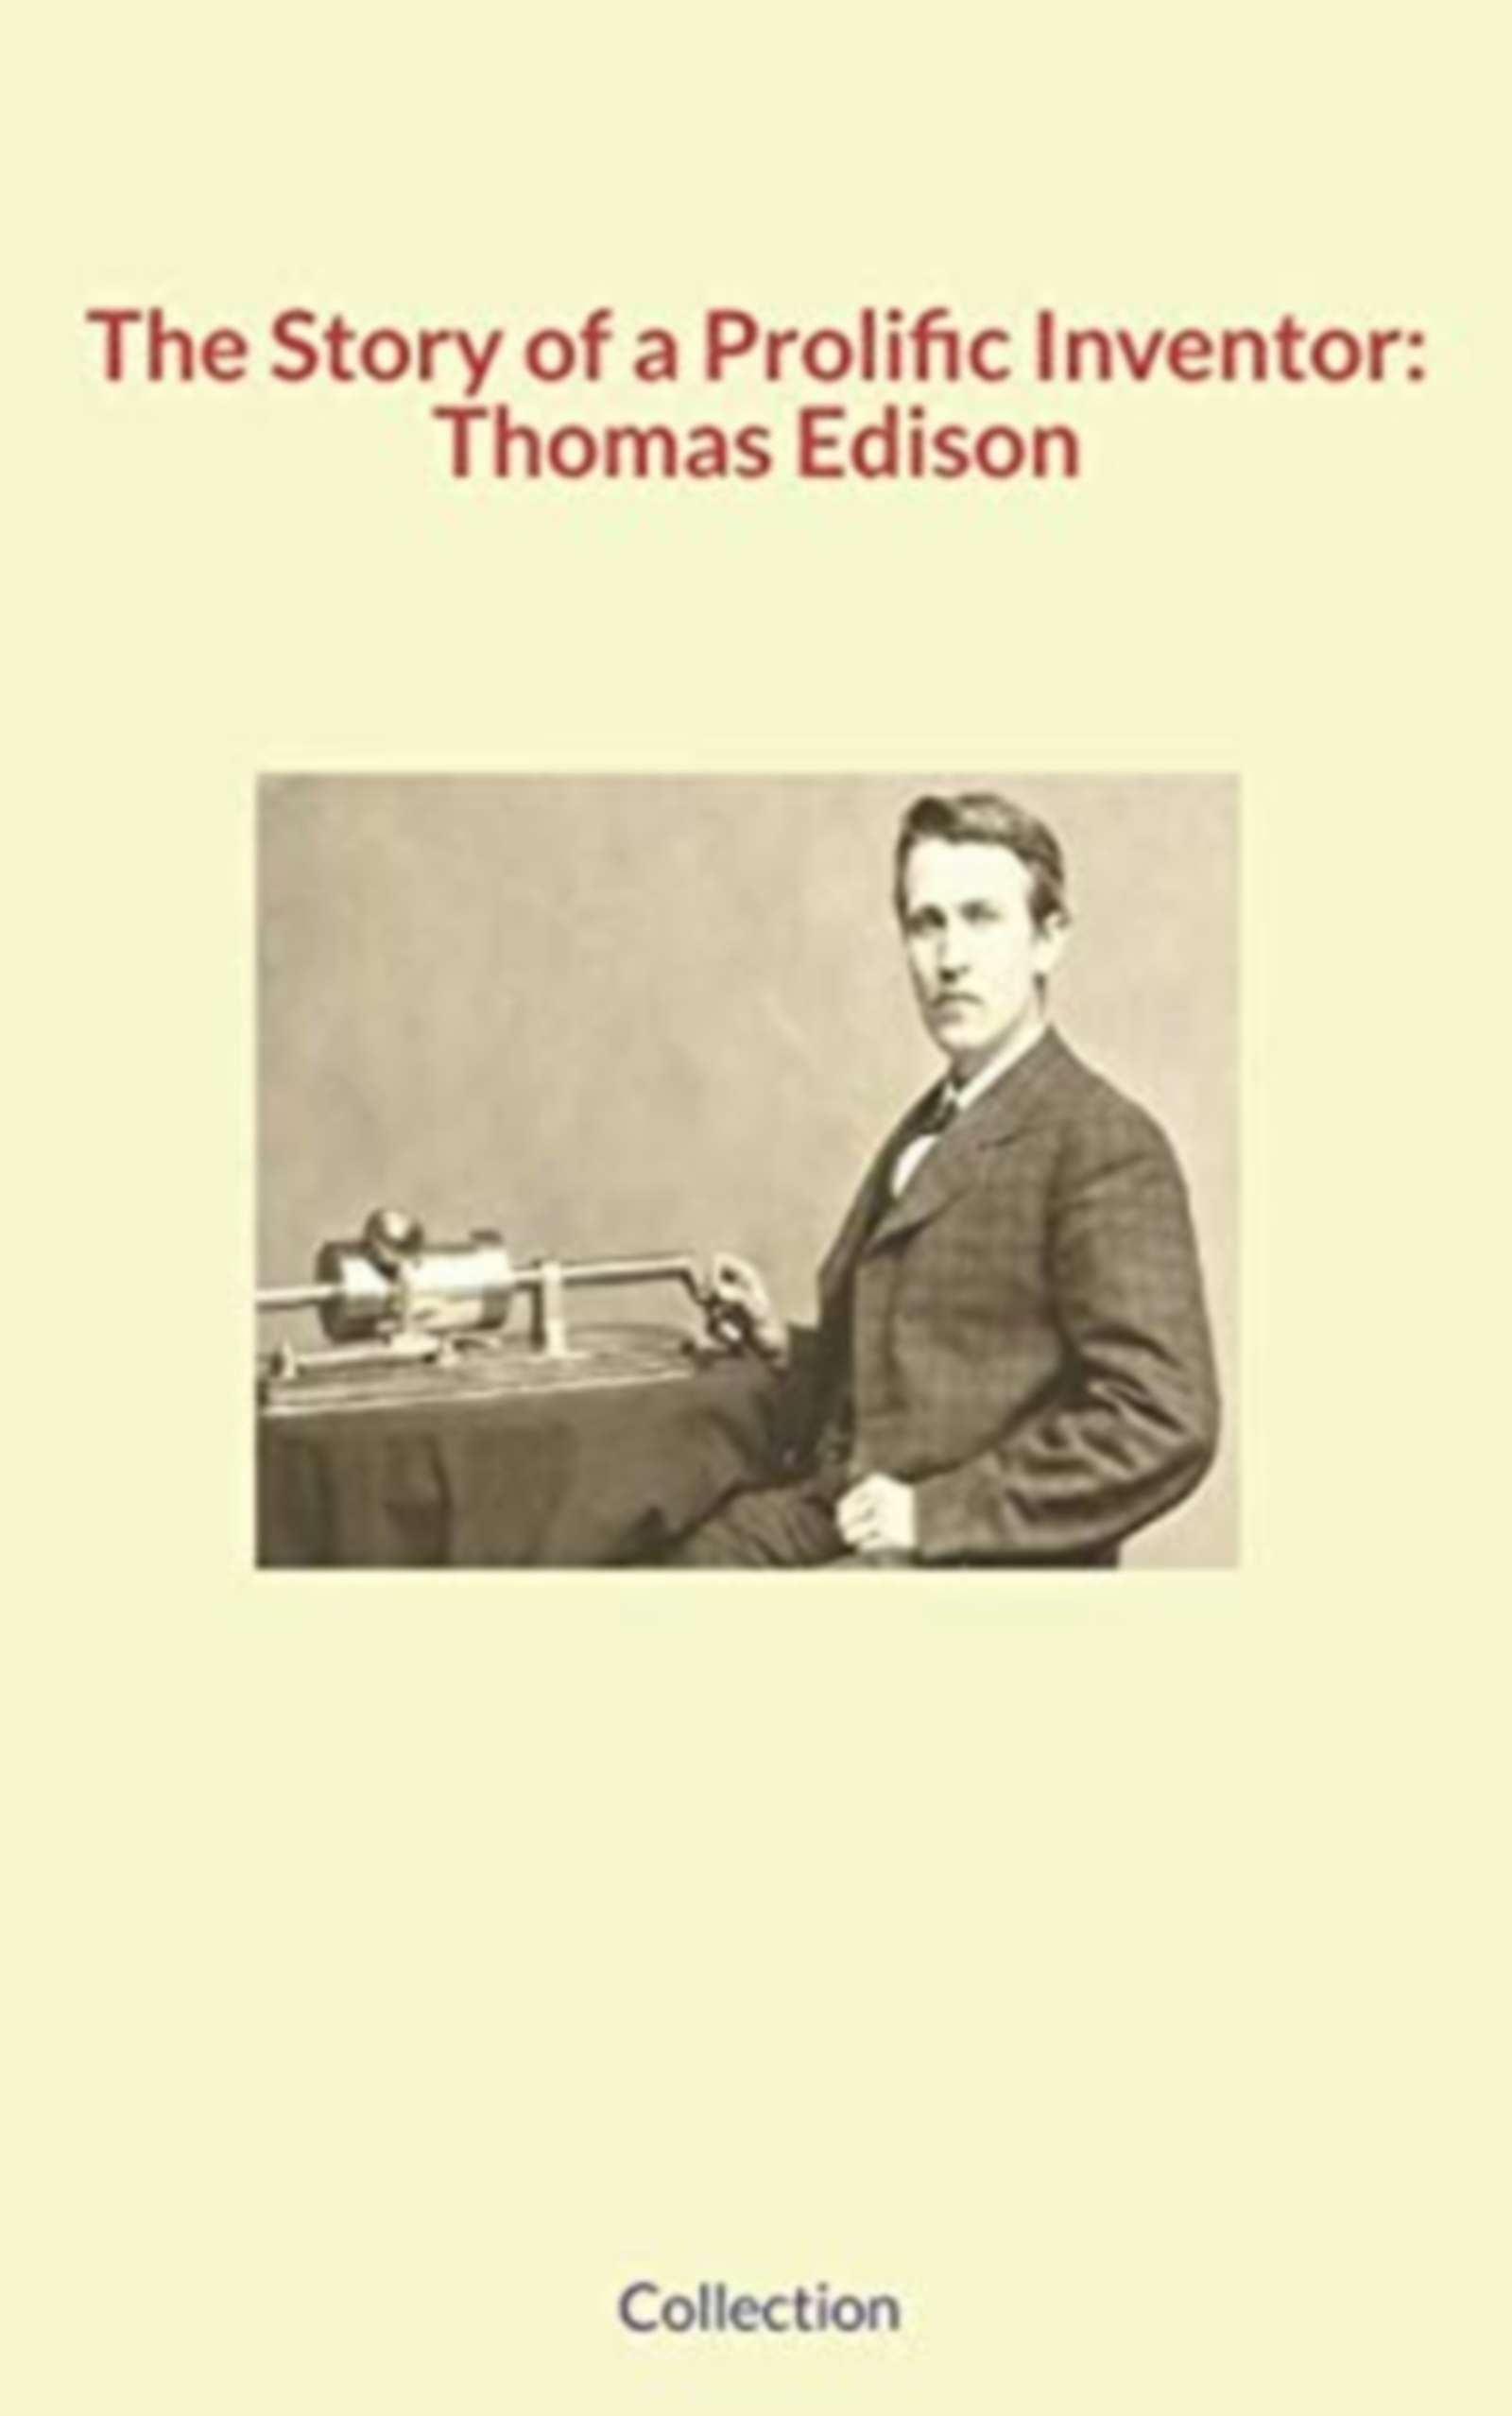 The Story of a Prolific Inventor: Thomas Edison